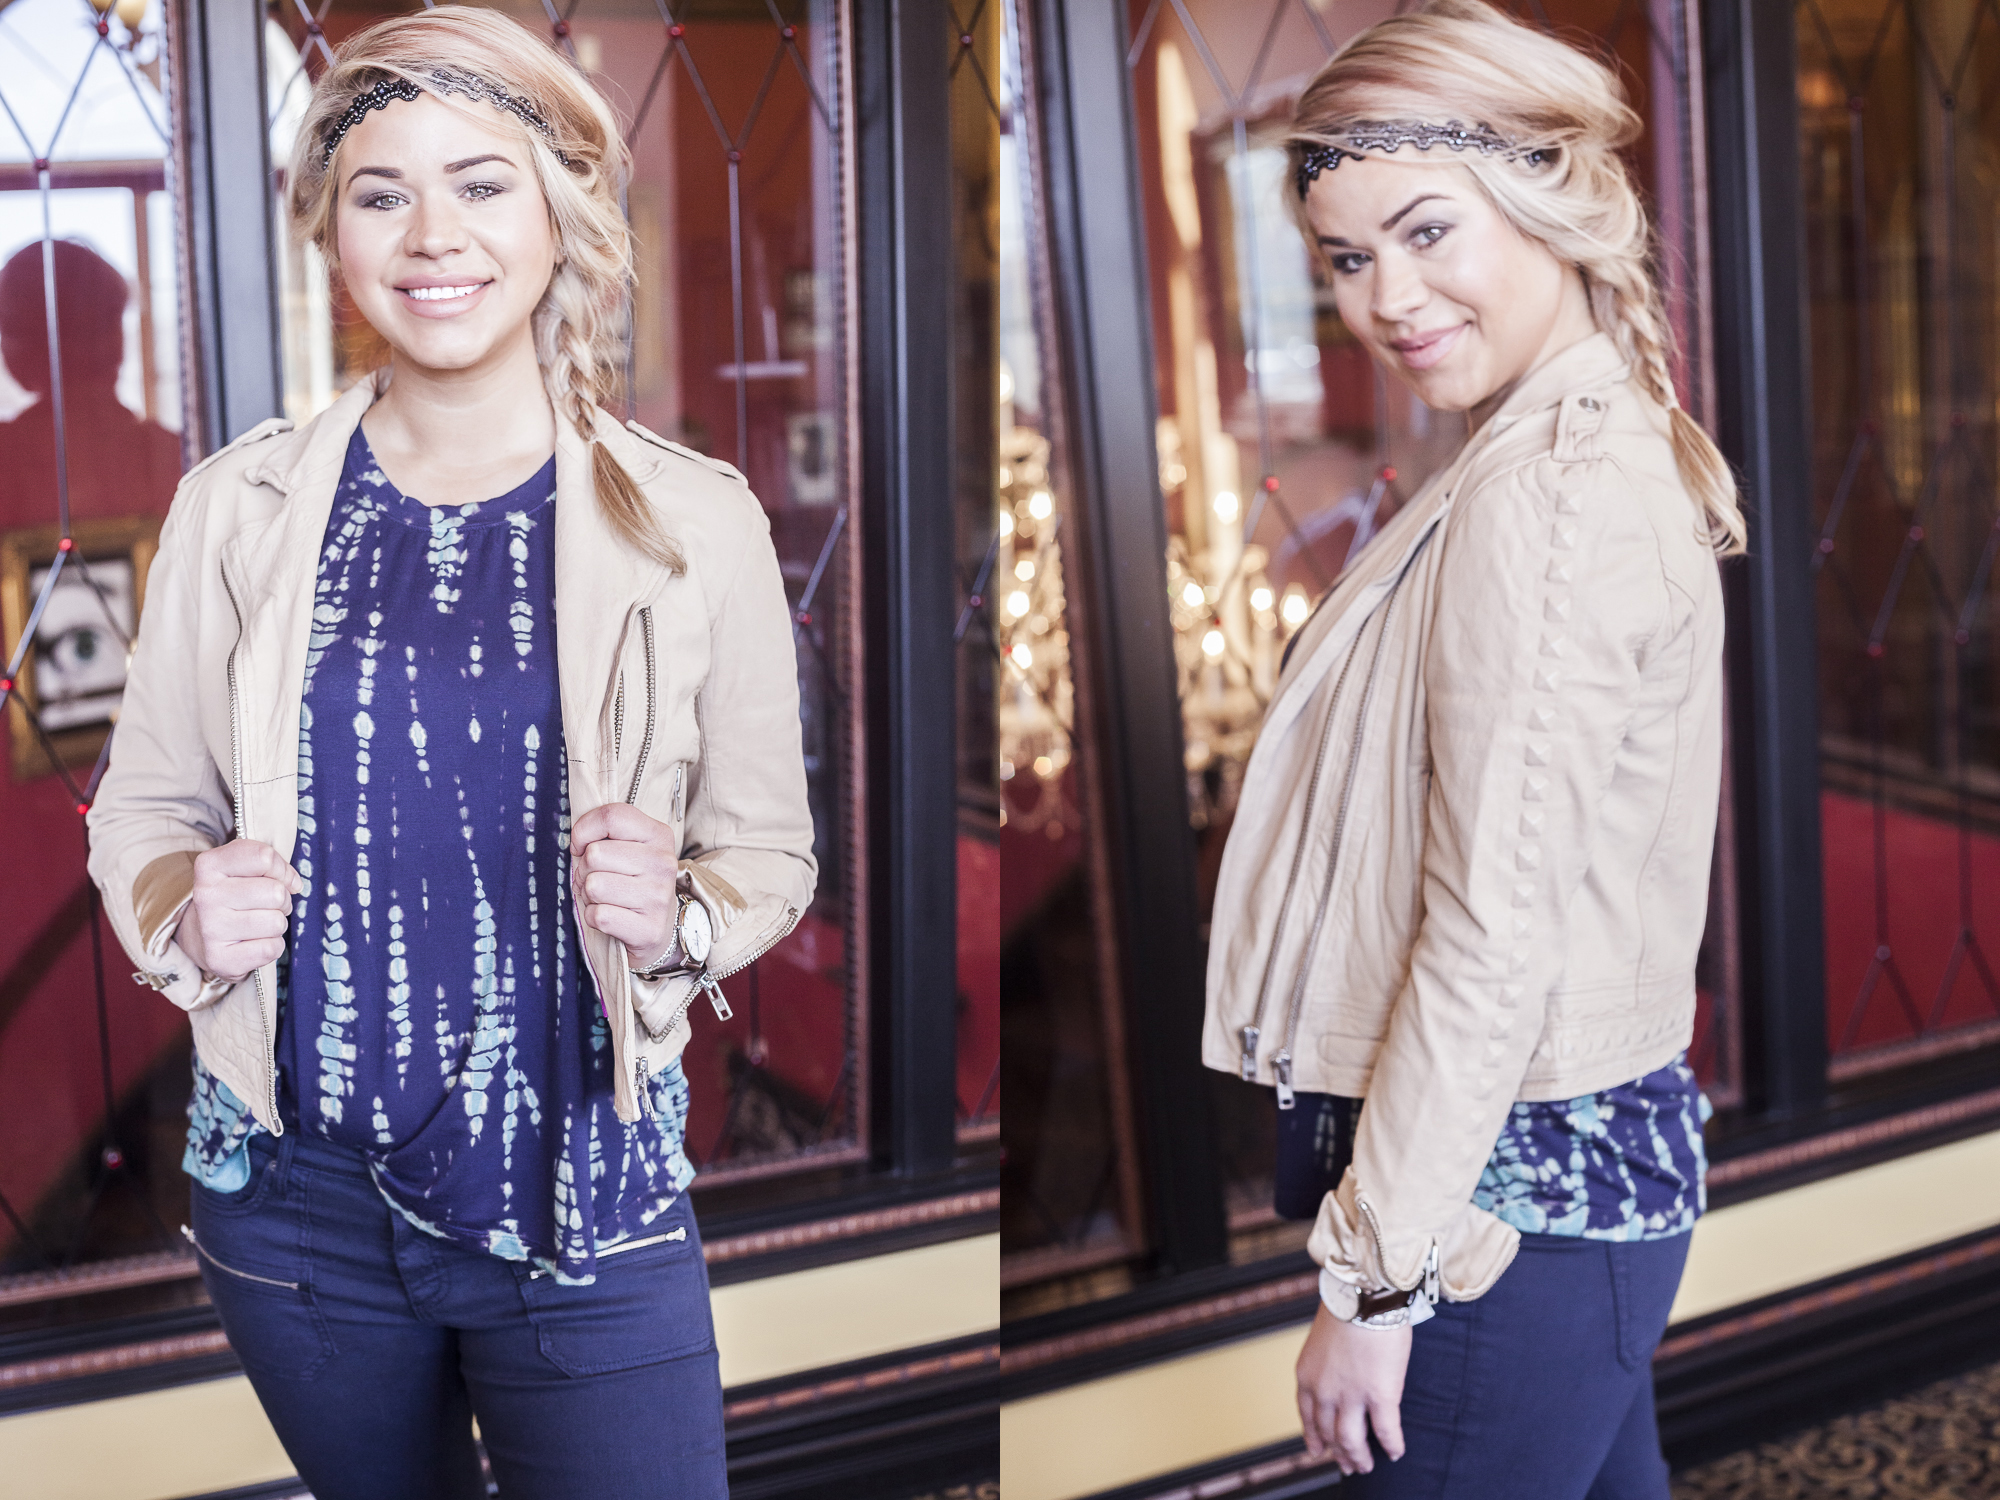 edmontons-womans-fashion-boutique-spring-style-2015-jeans-leather-jackets-bella-maas